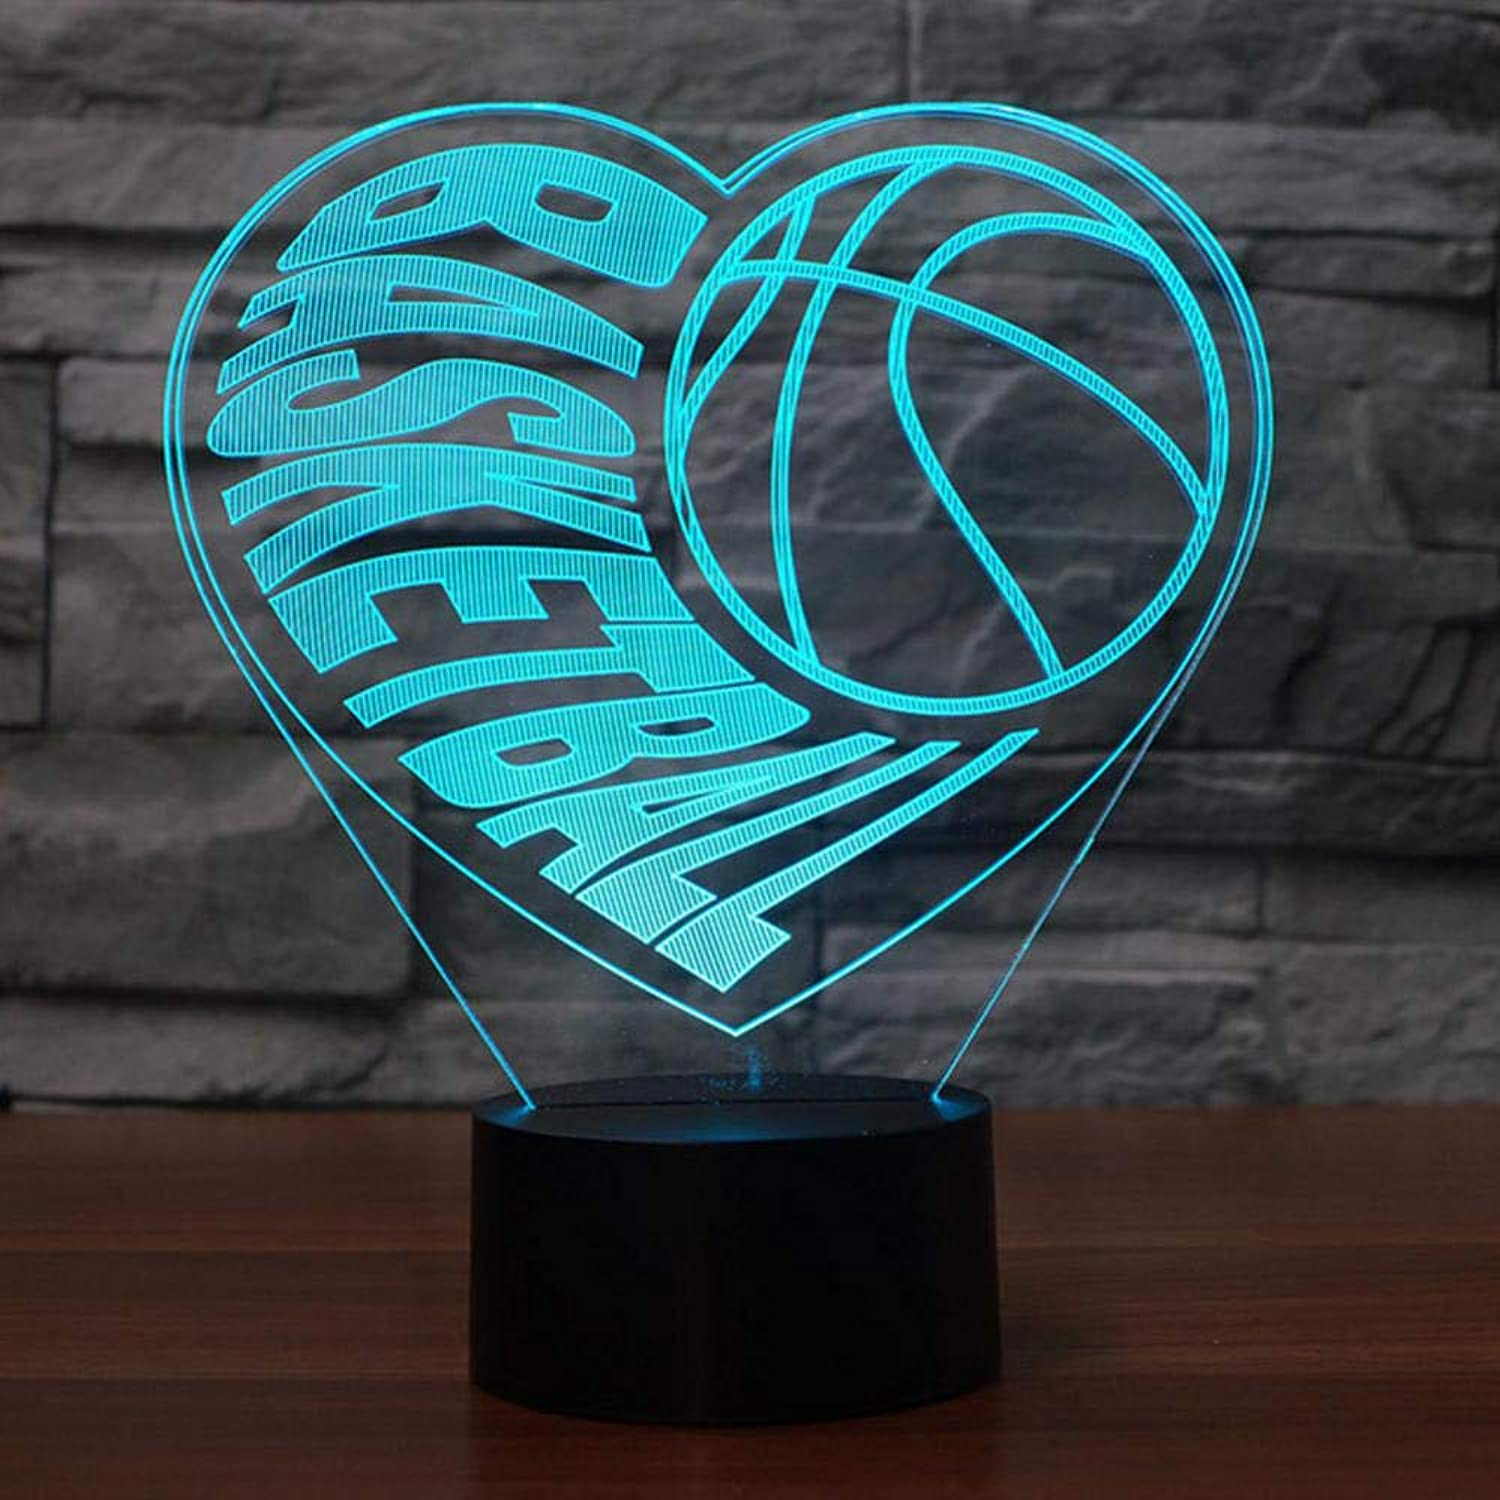 Rtfc 3D Visual Illusion Heart Basketball Led Transparent Acrylic 3D Night Light Led Lampa 7 color Changing Touch